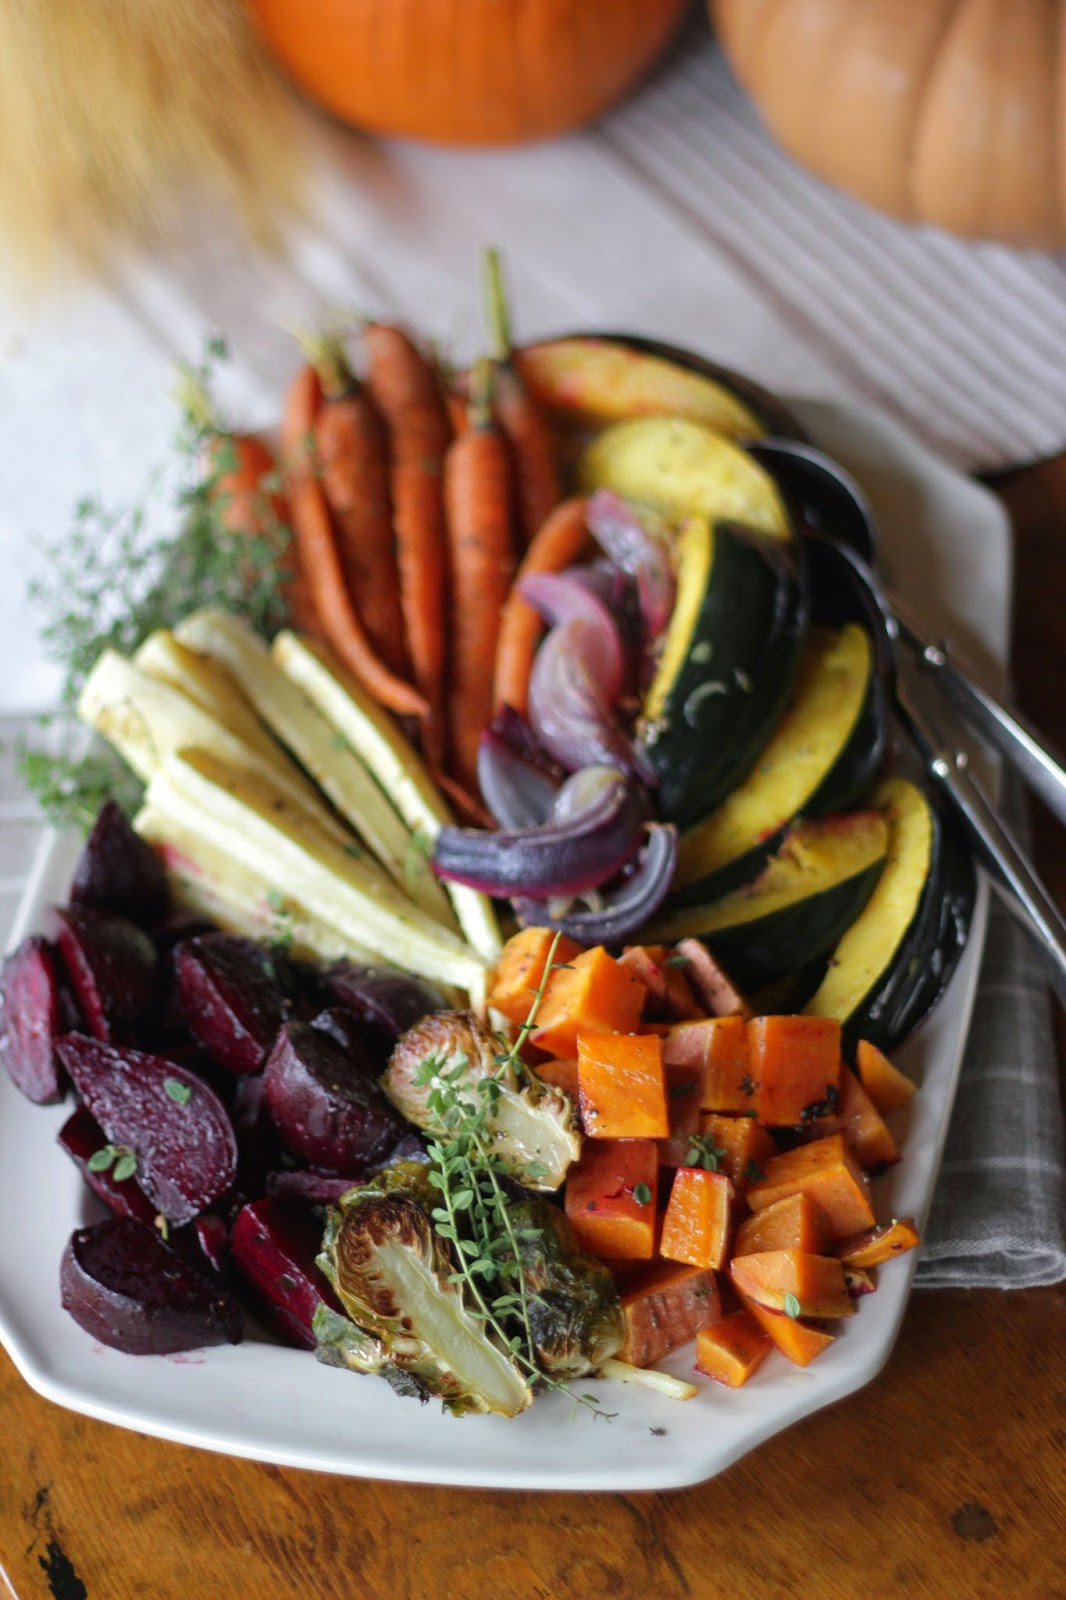 Roasted Vegetables Thanksgiving  Jenny Steffens Hobick Roasted Root Ve able Platter with